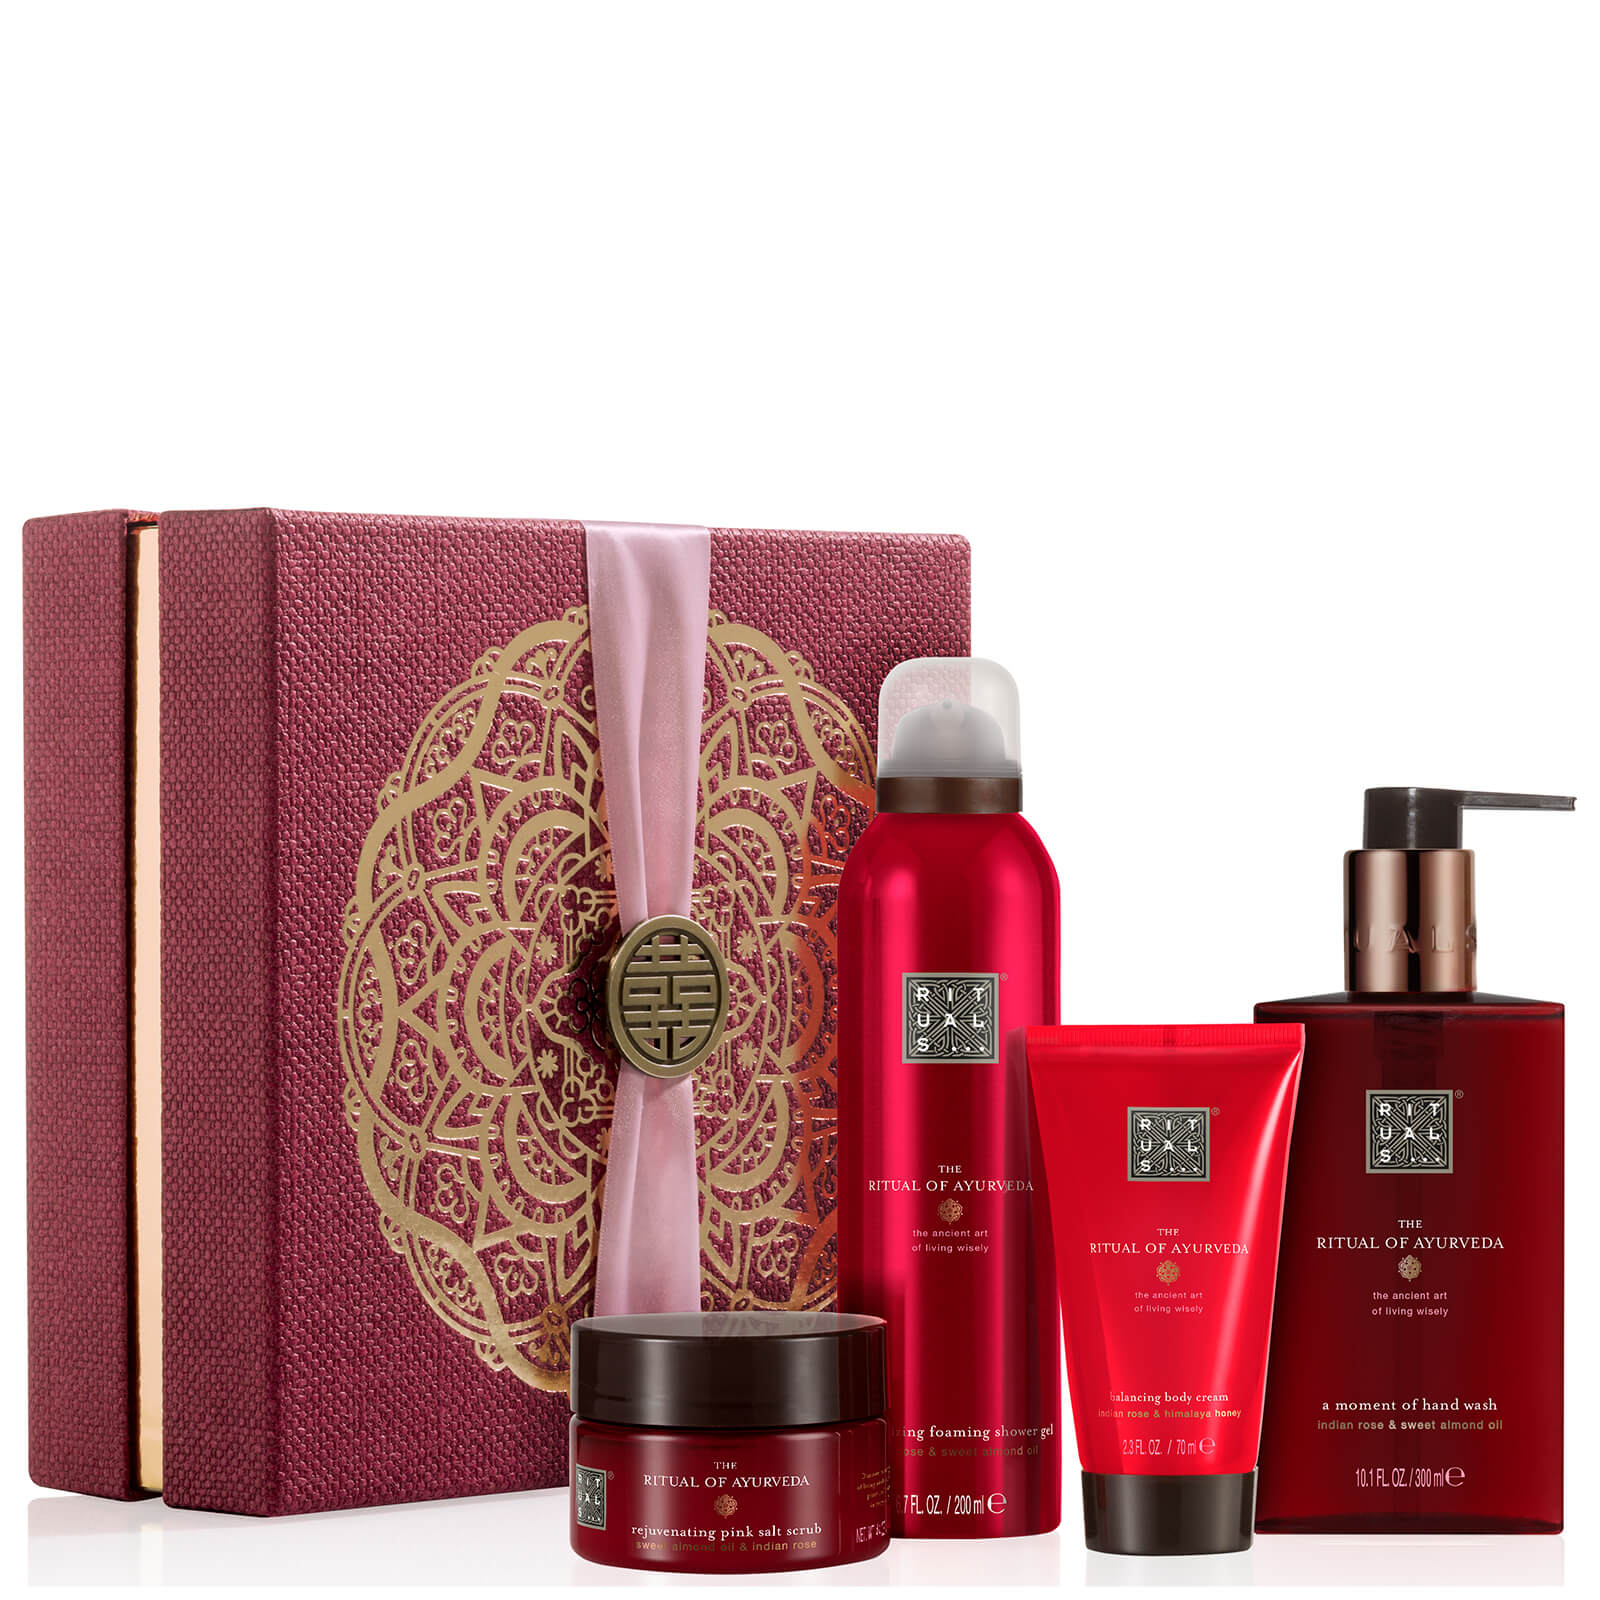 8e302d83666d7 Rituals The Ritual of Ayurveda Balancing Ritual Gift Set | Free Shipping |  Lookfantastic